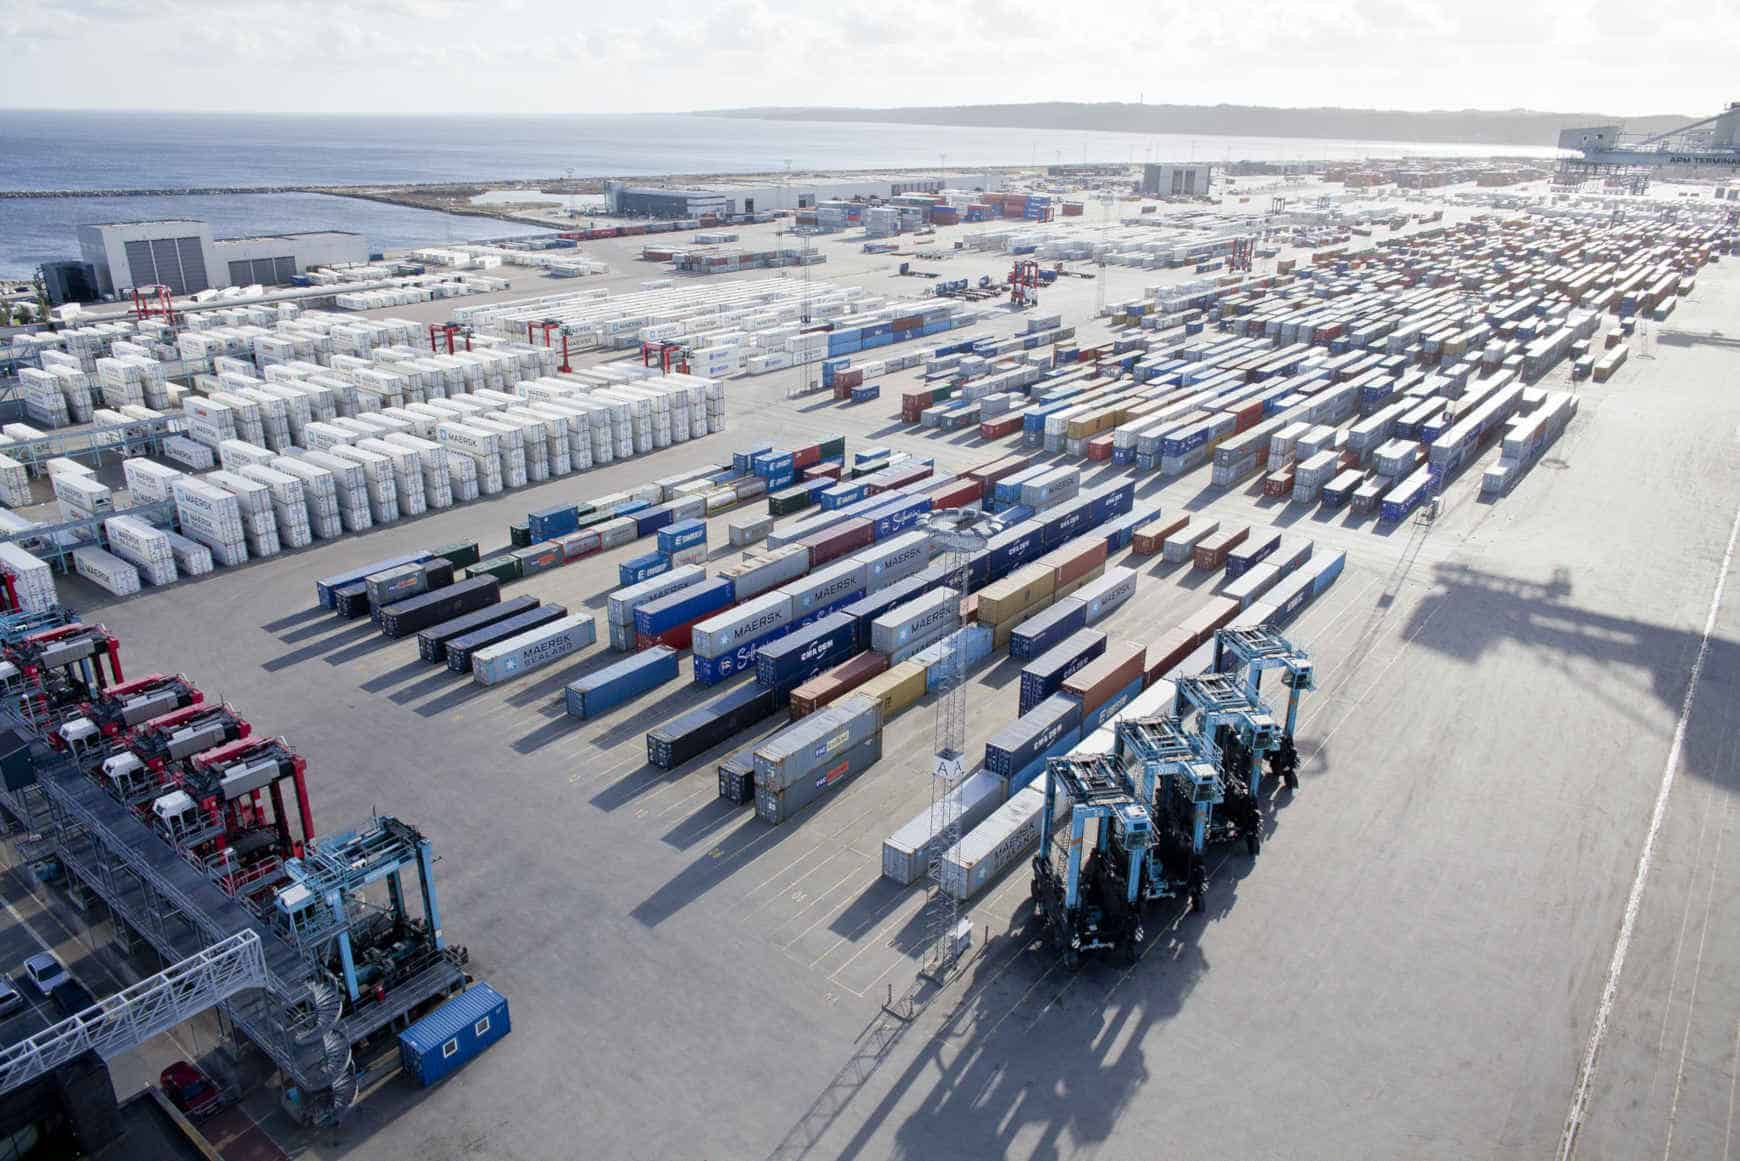 APMT set to acquire ALC's Aarhus container terminal